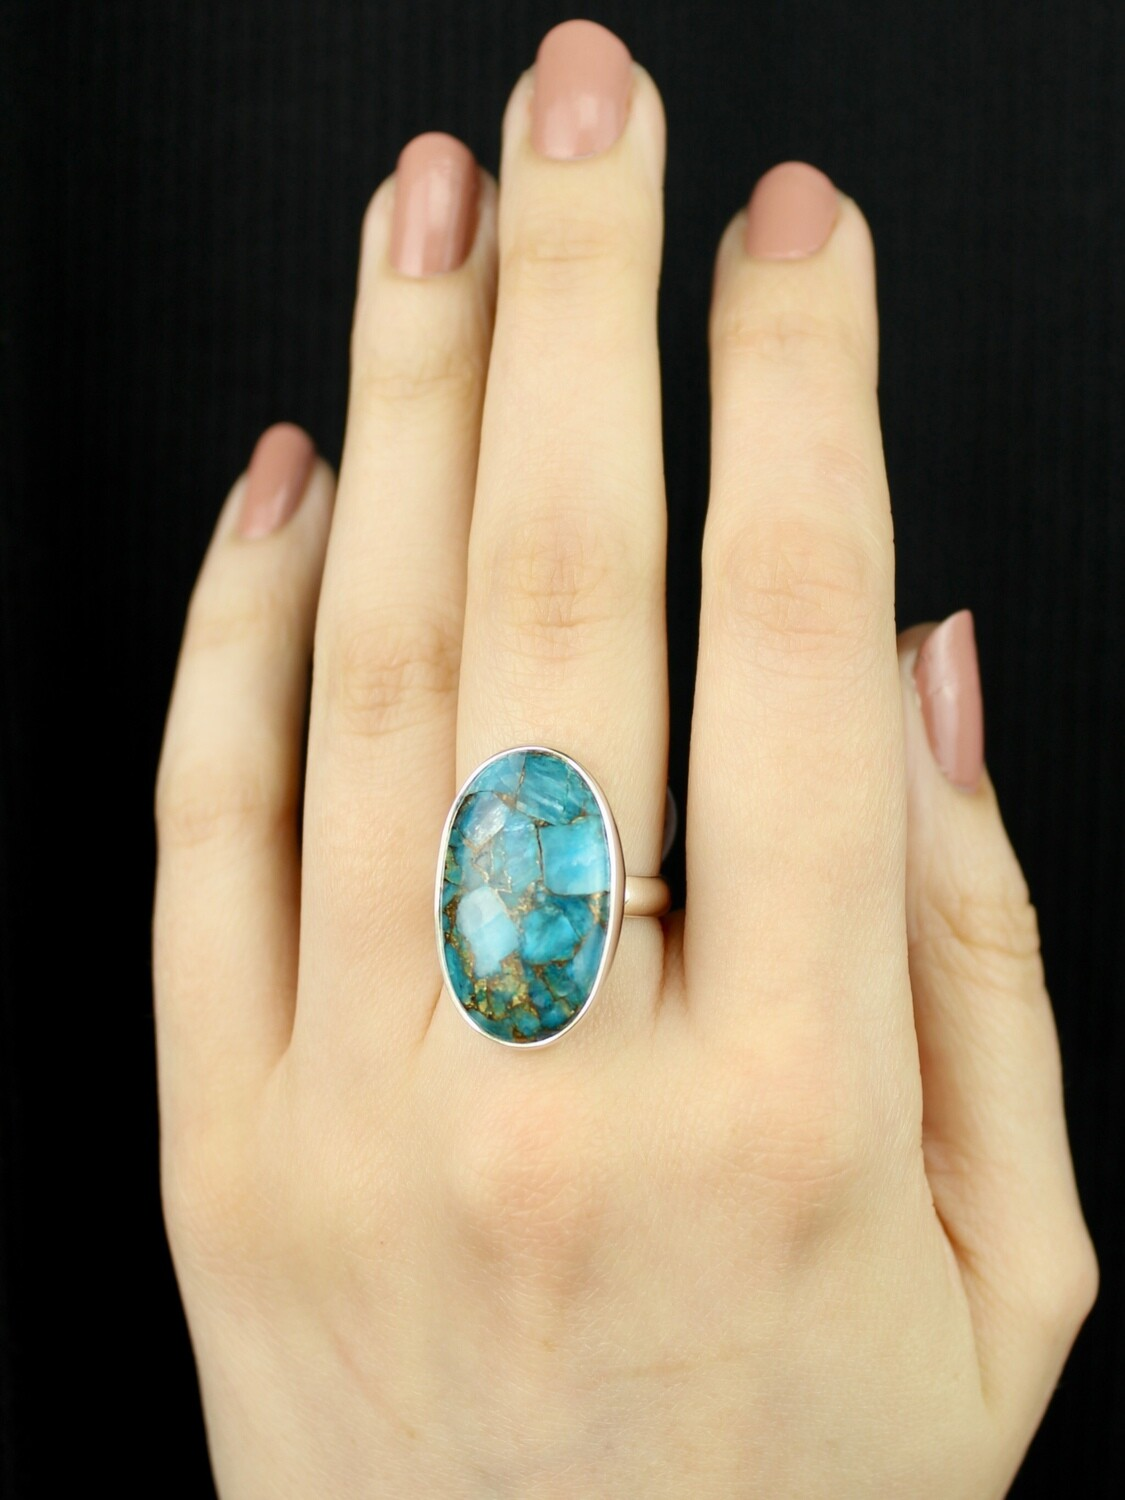 SIZE 7 - Sterling Silver Mojave Turquoise Oval Ring - RIG7108